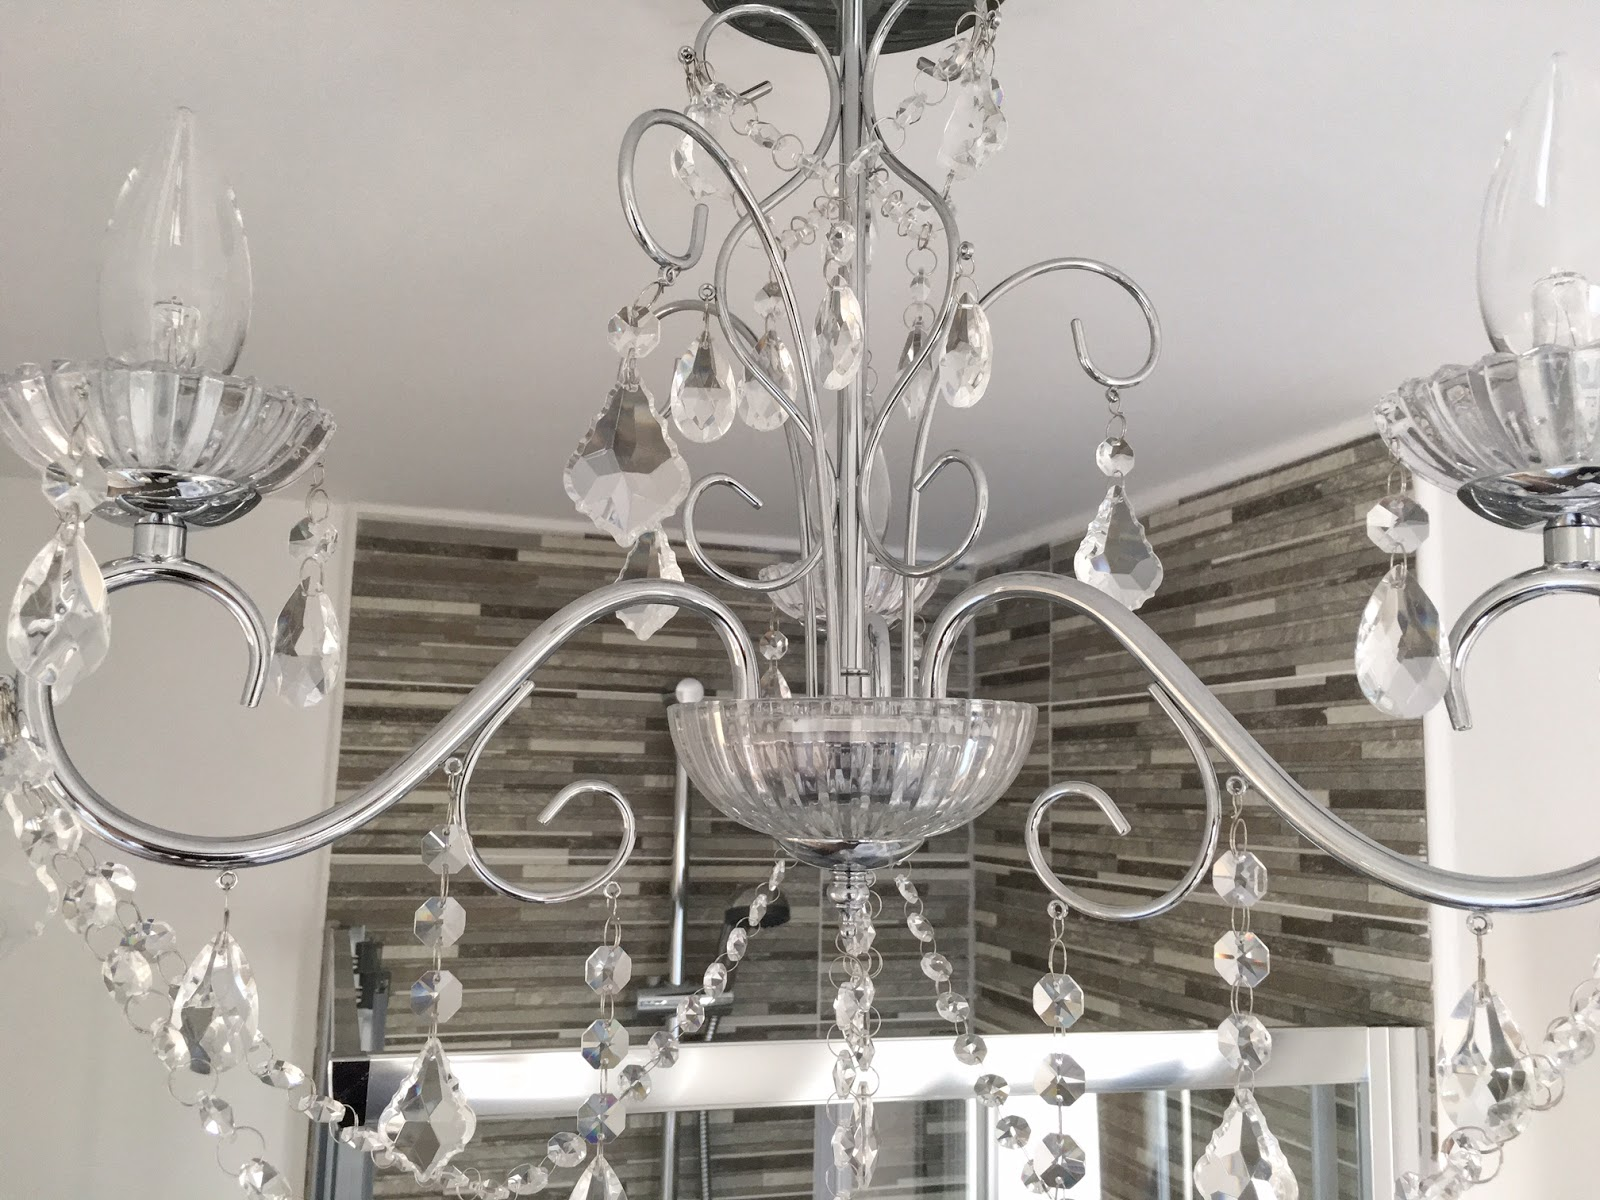 Bathroom Chandelier Lighting The Finishing Touch Vara 3 Light Bathroom Chandelier A Hint Of